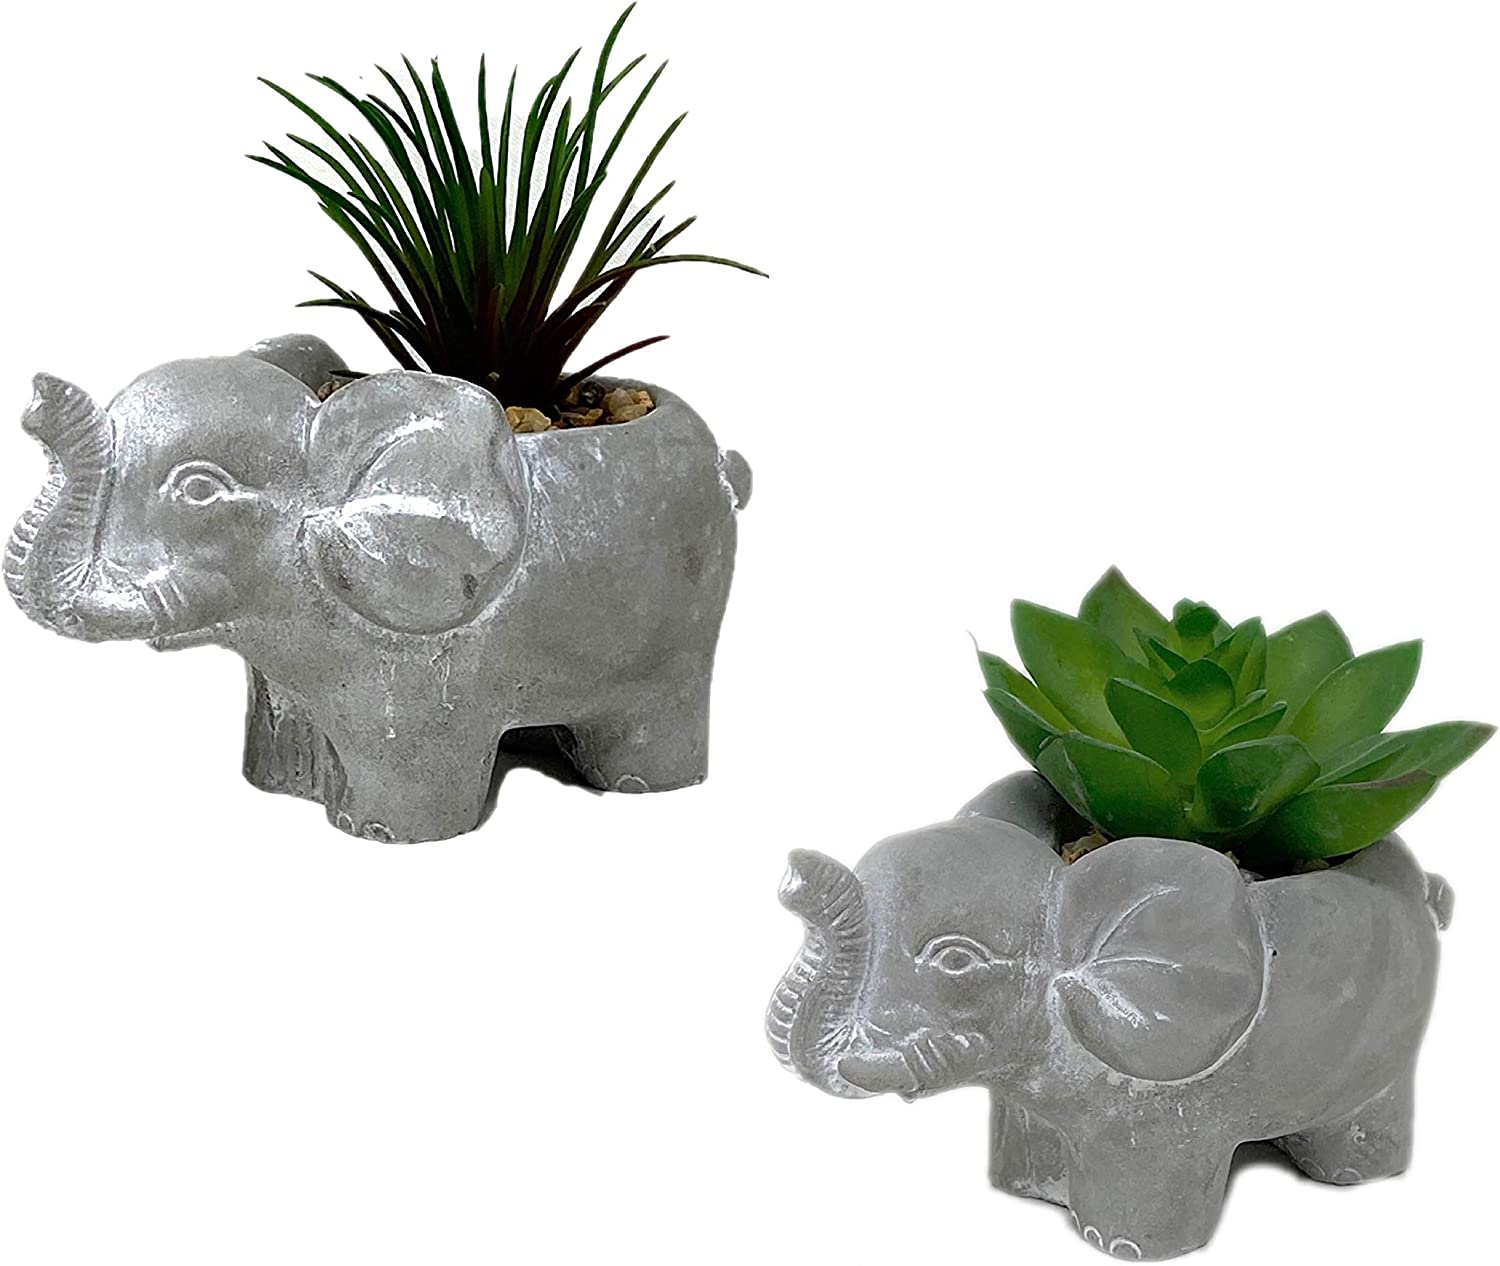 THE NIFTY NOOK Set of 2 New Good Luck Elephant Succulent Planter Pots with Artificial Plants for Your Home or Office, Table or Desk Decor